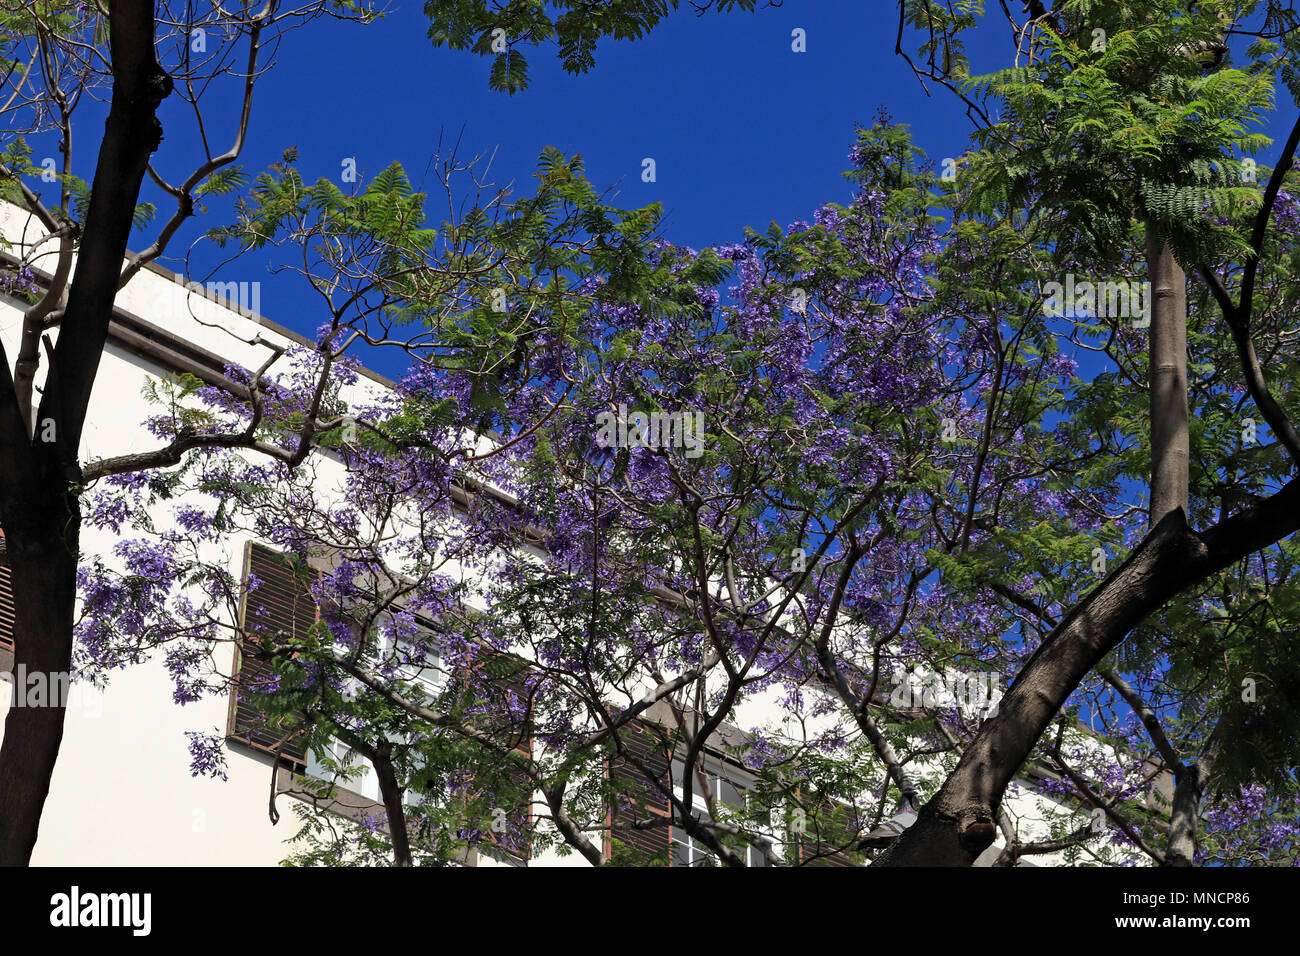 Jacaranda trees stock photos jacaranda trees stock images alamy in spring on the island of madeira trees are covered in blue flowers these are izmirmasajfo